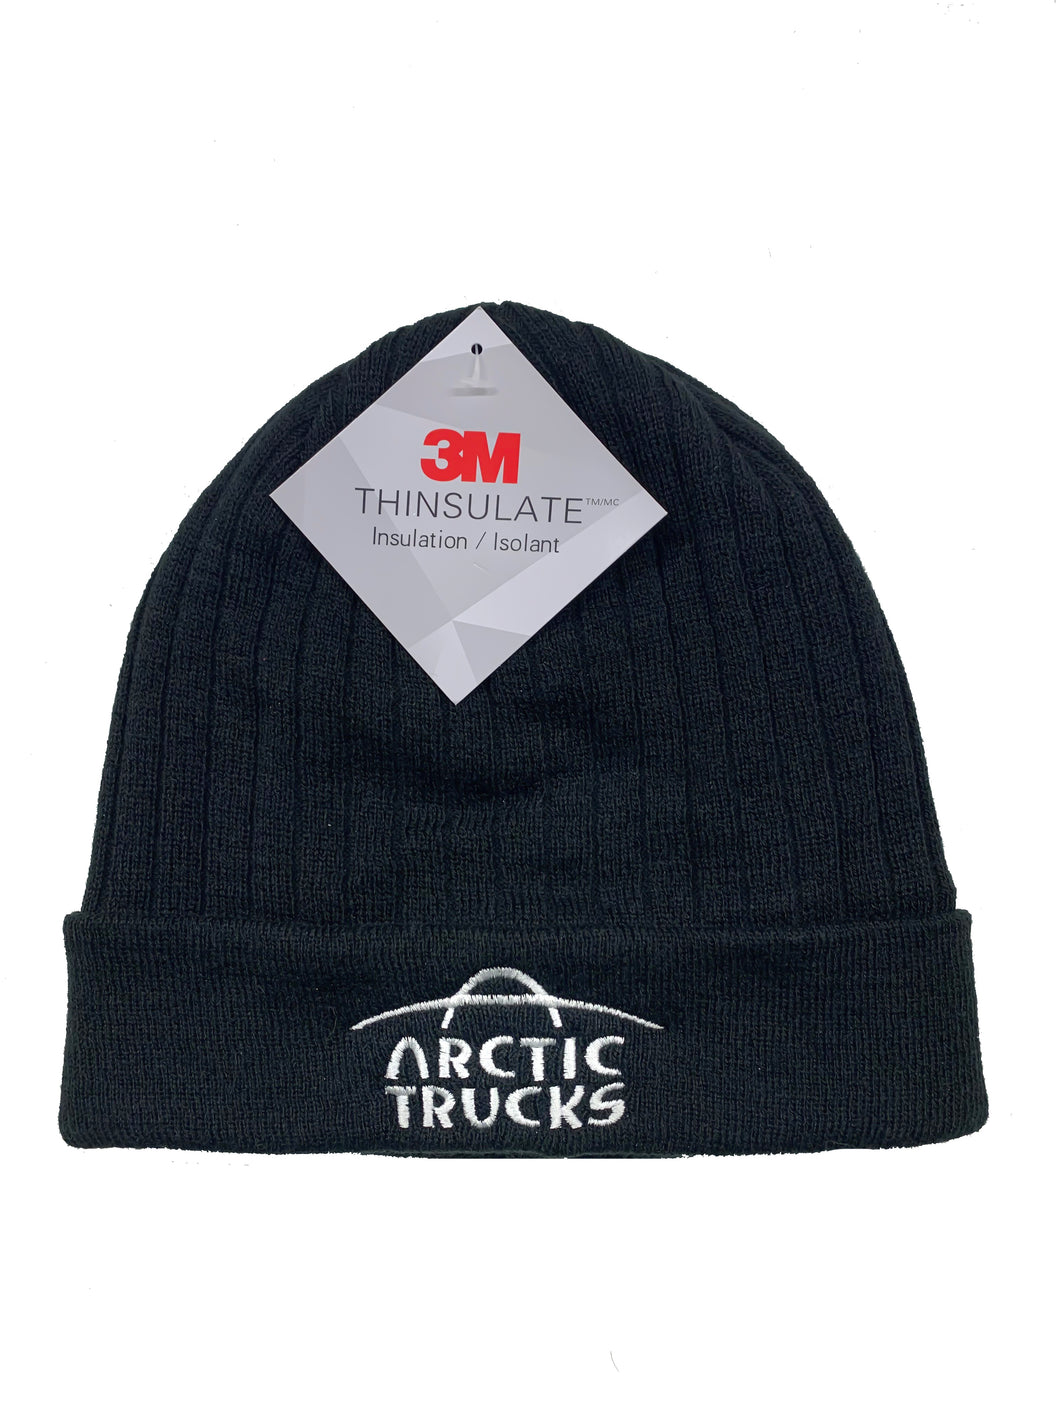 Arctic Trucks Thinsulate™ Beanie